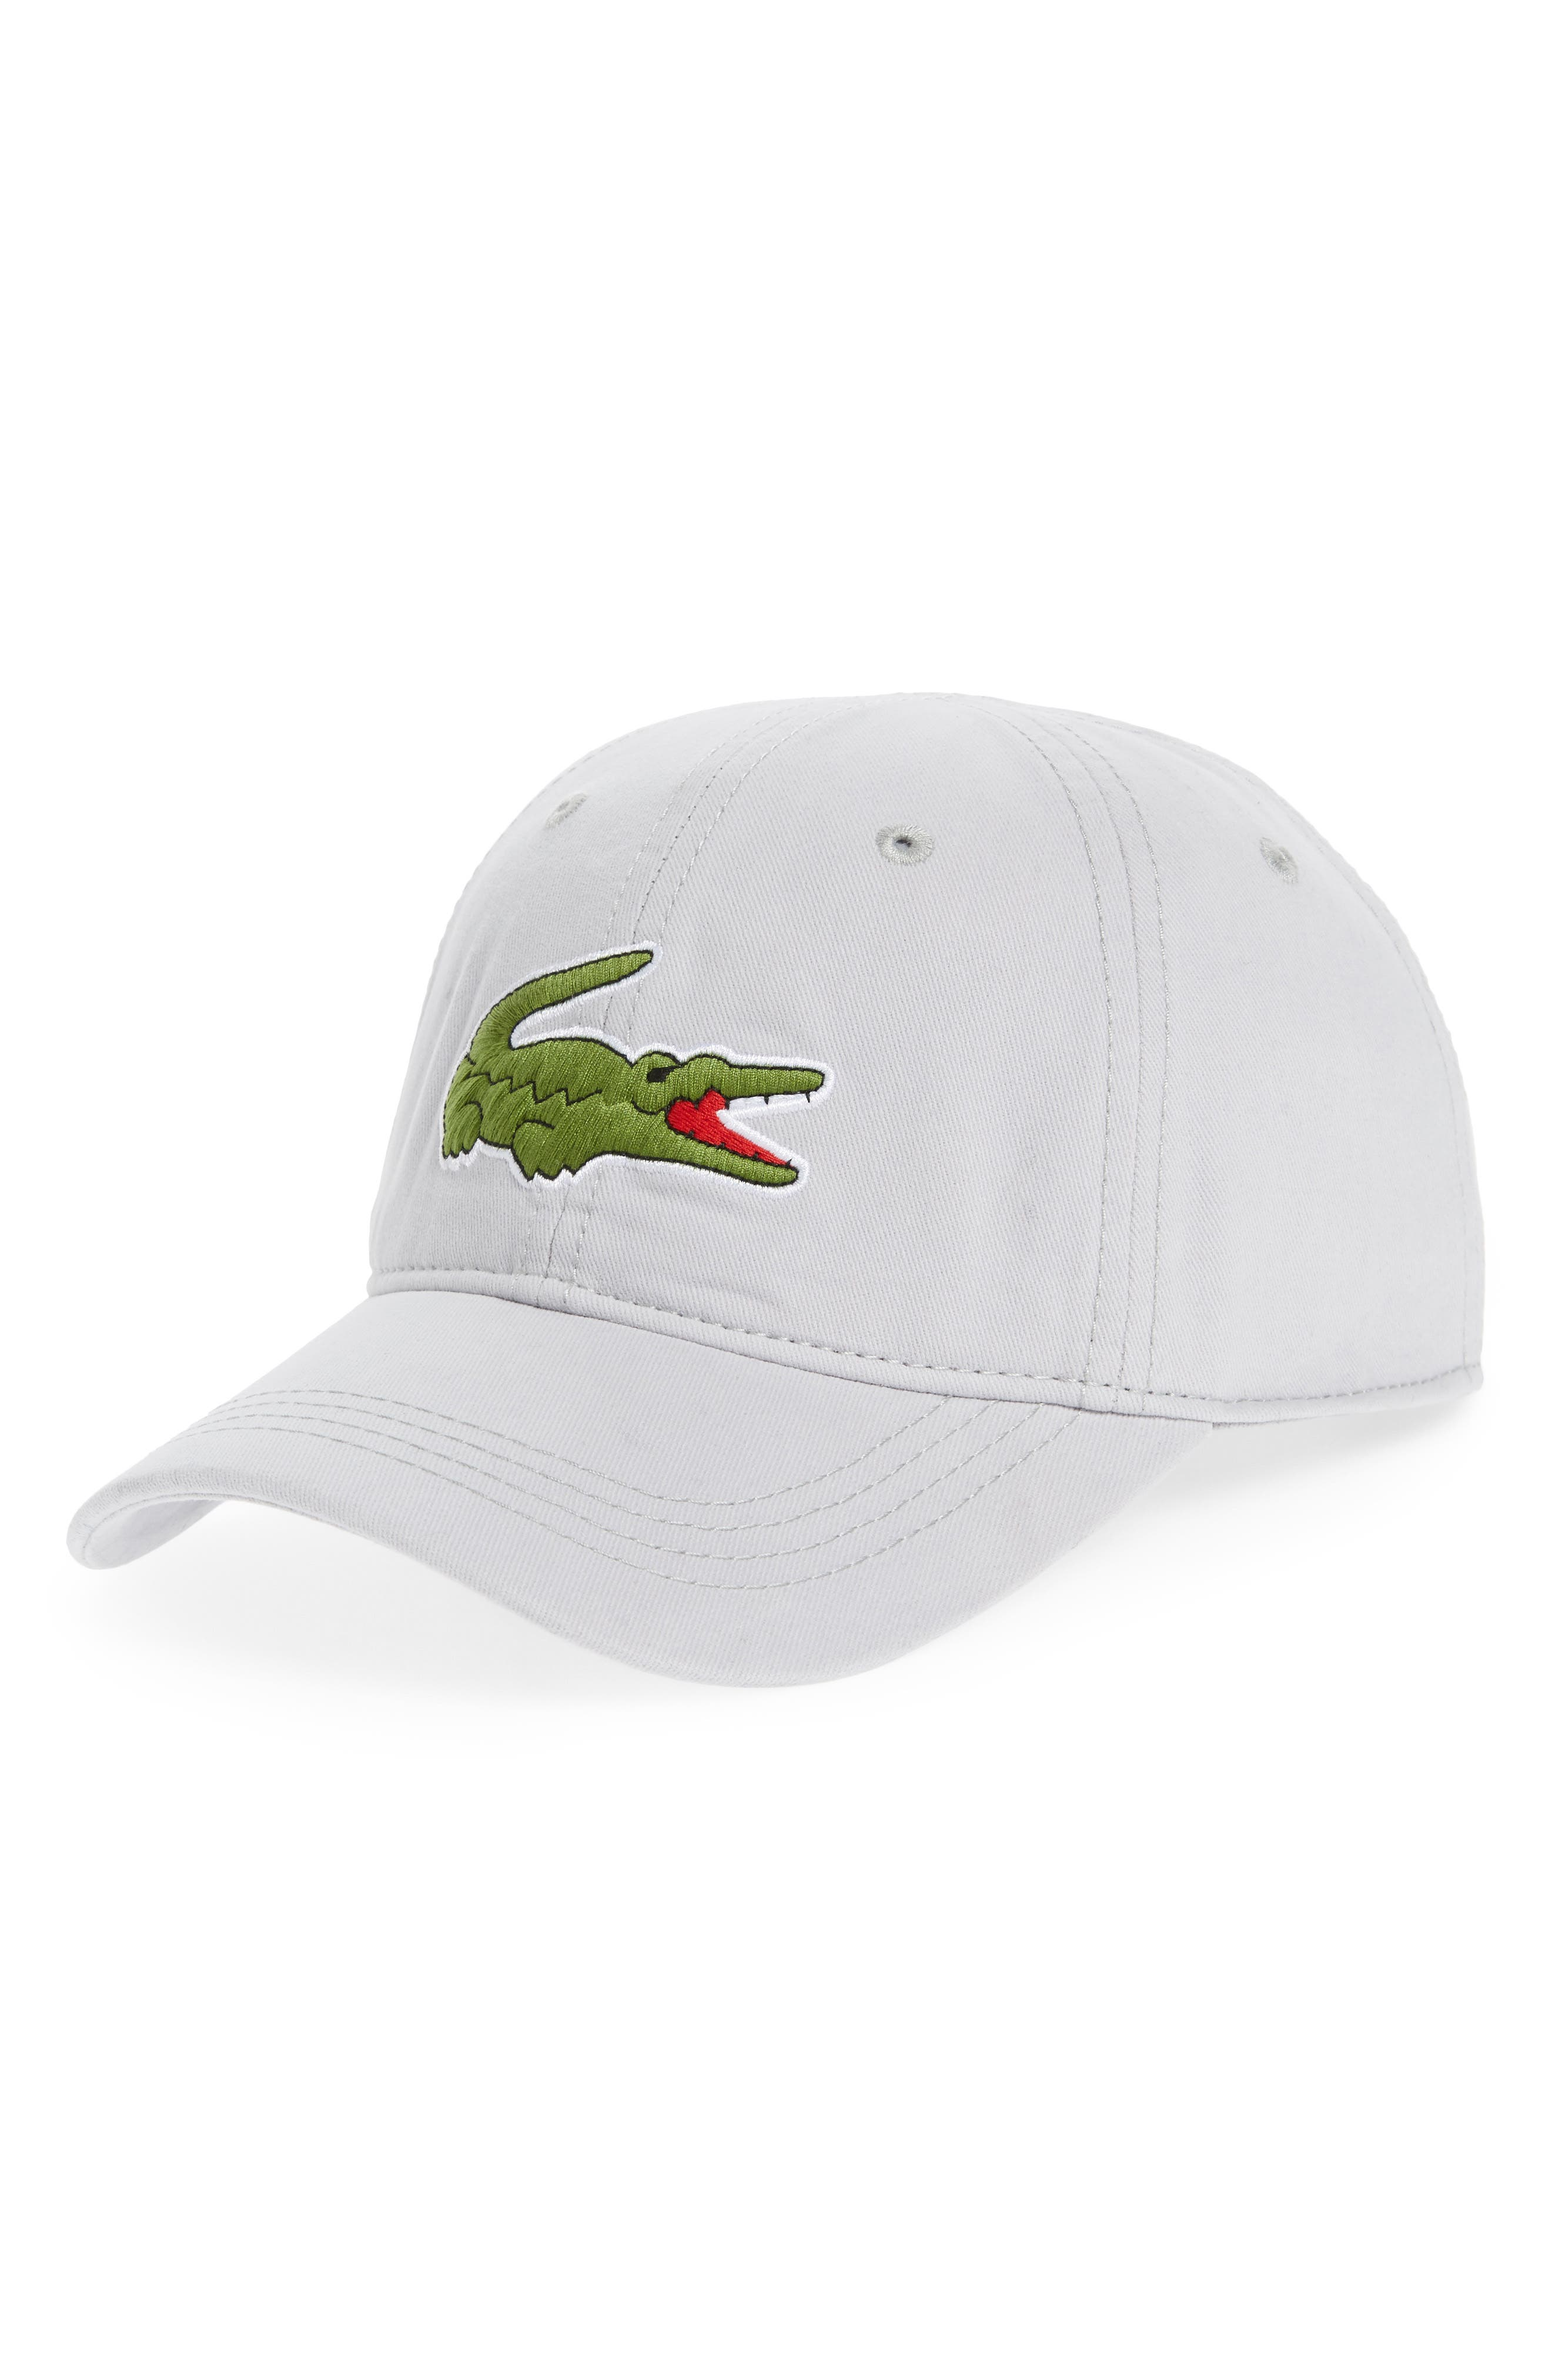 'Big Croc' Logo Embroidered Cap,                             Main thumbnail 1, color,                             020